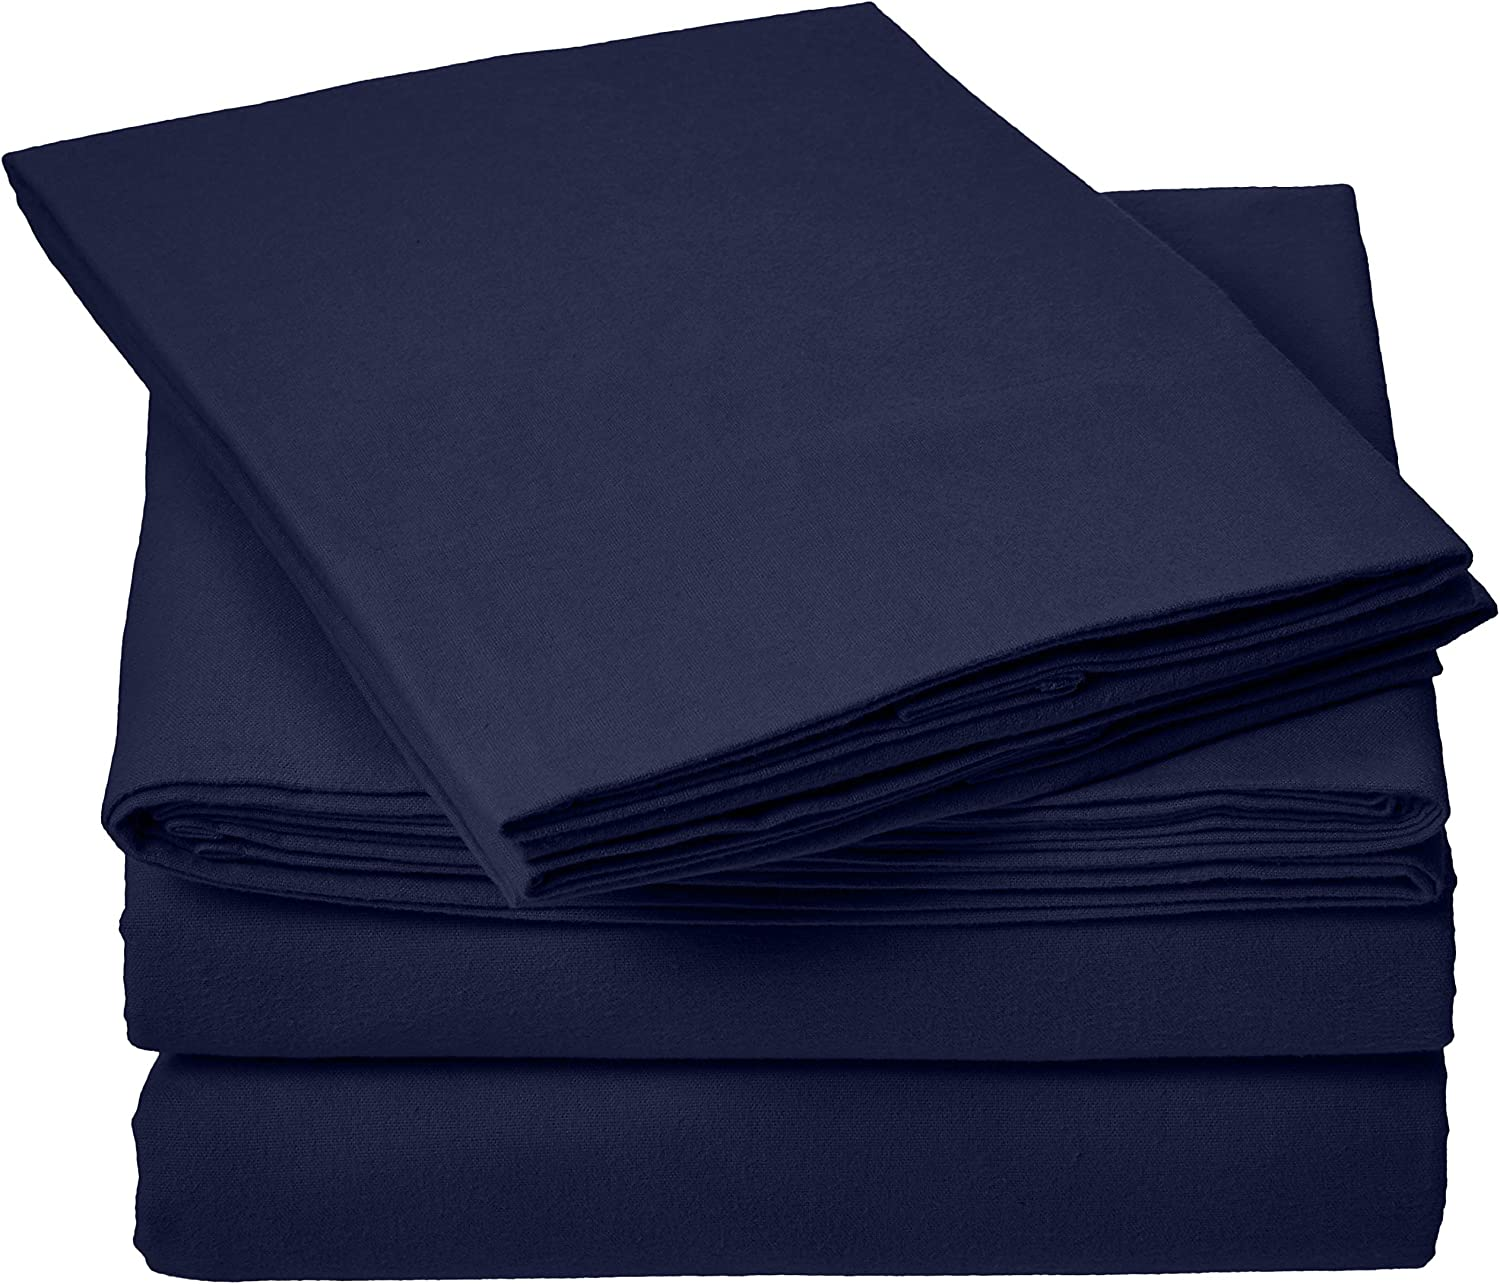 store Amazon Basics Everyday Flannel Bed Sheet Max 46% OFF Blue - Navy Queen Set